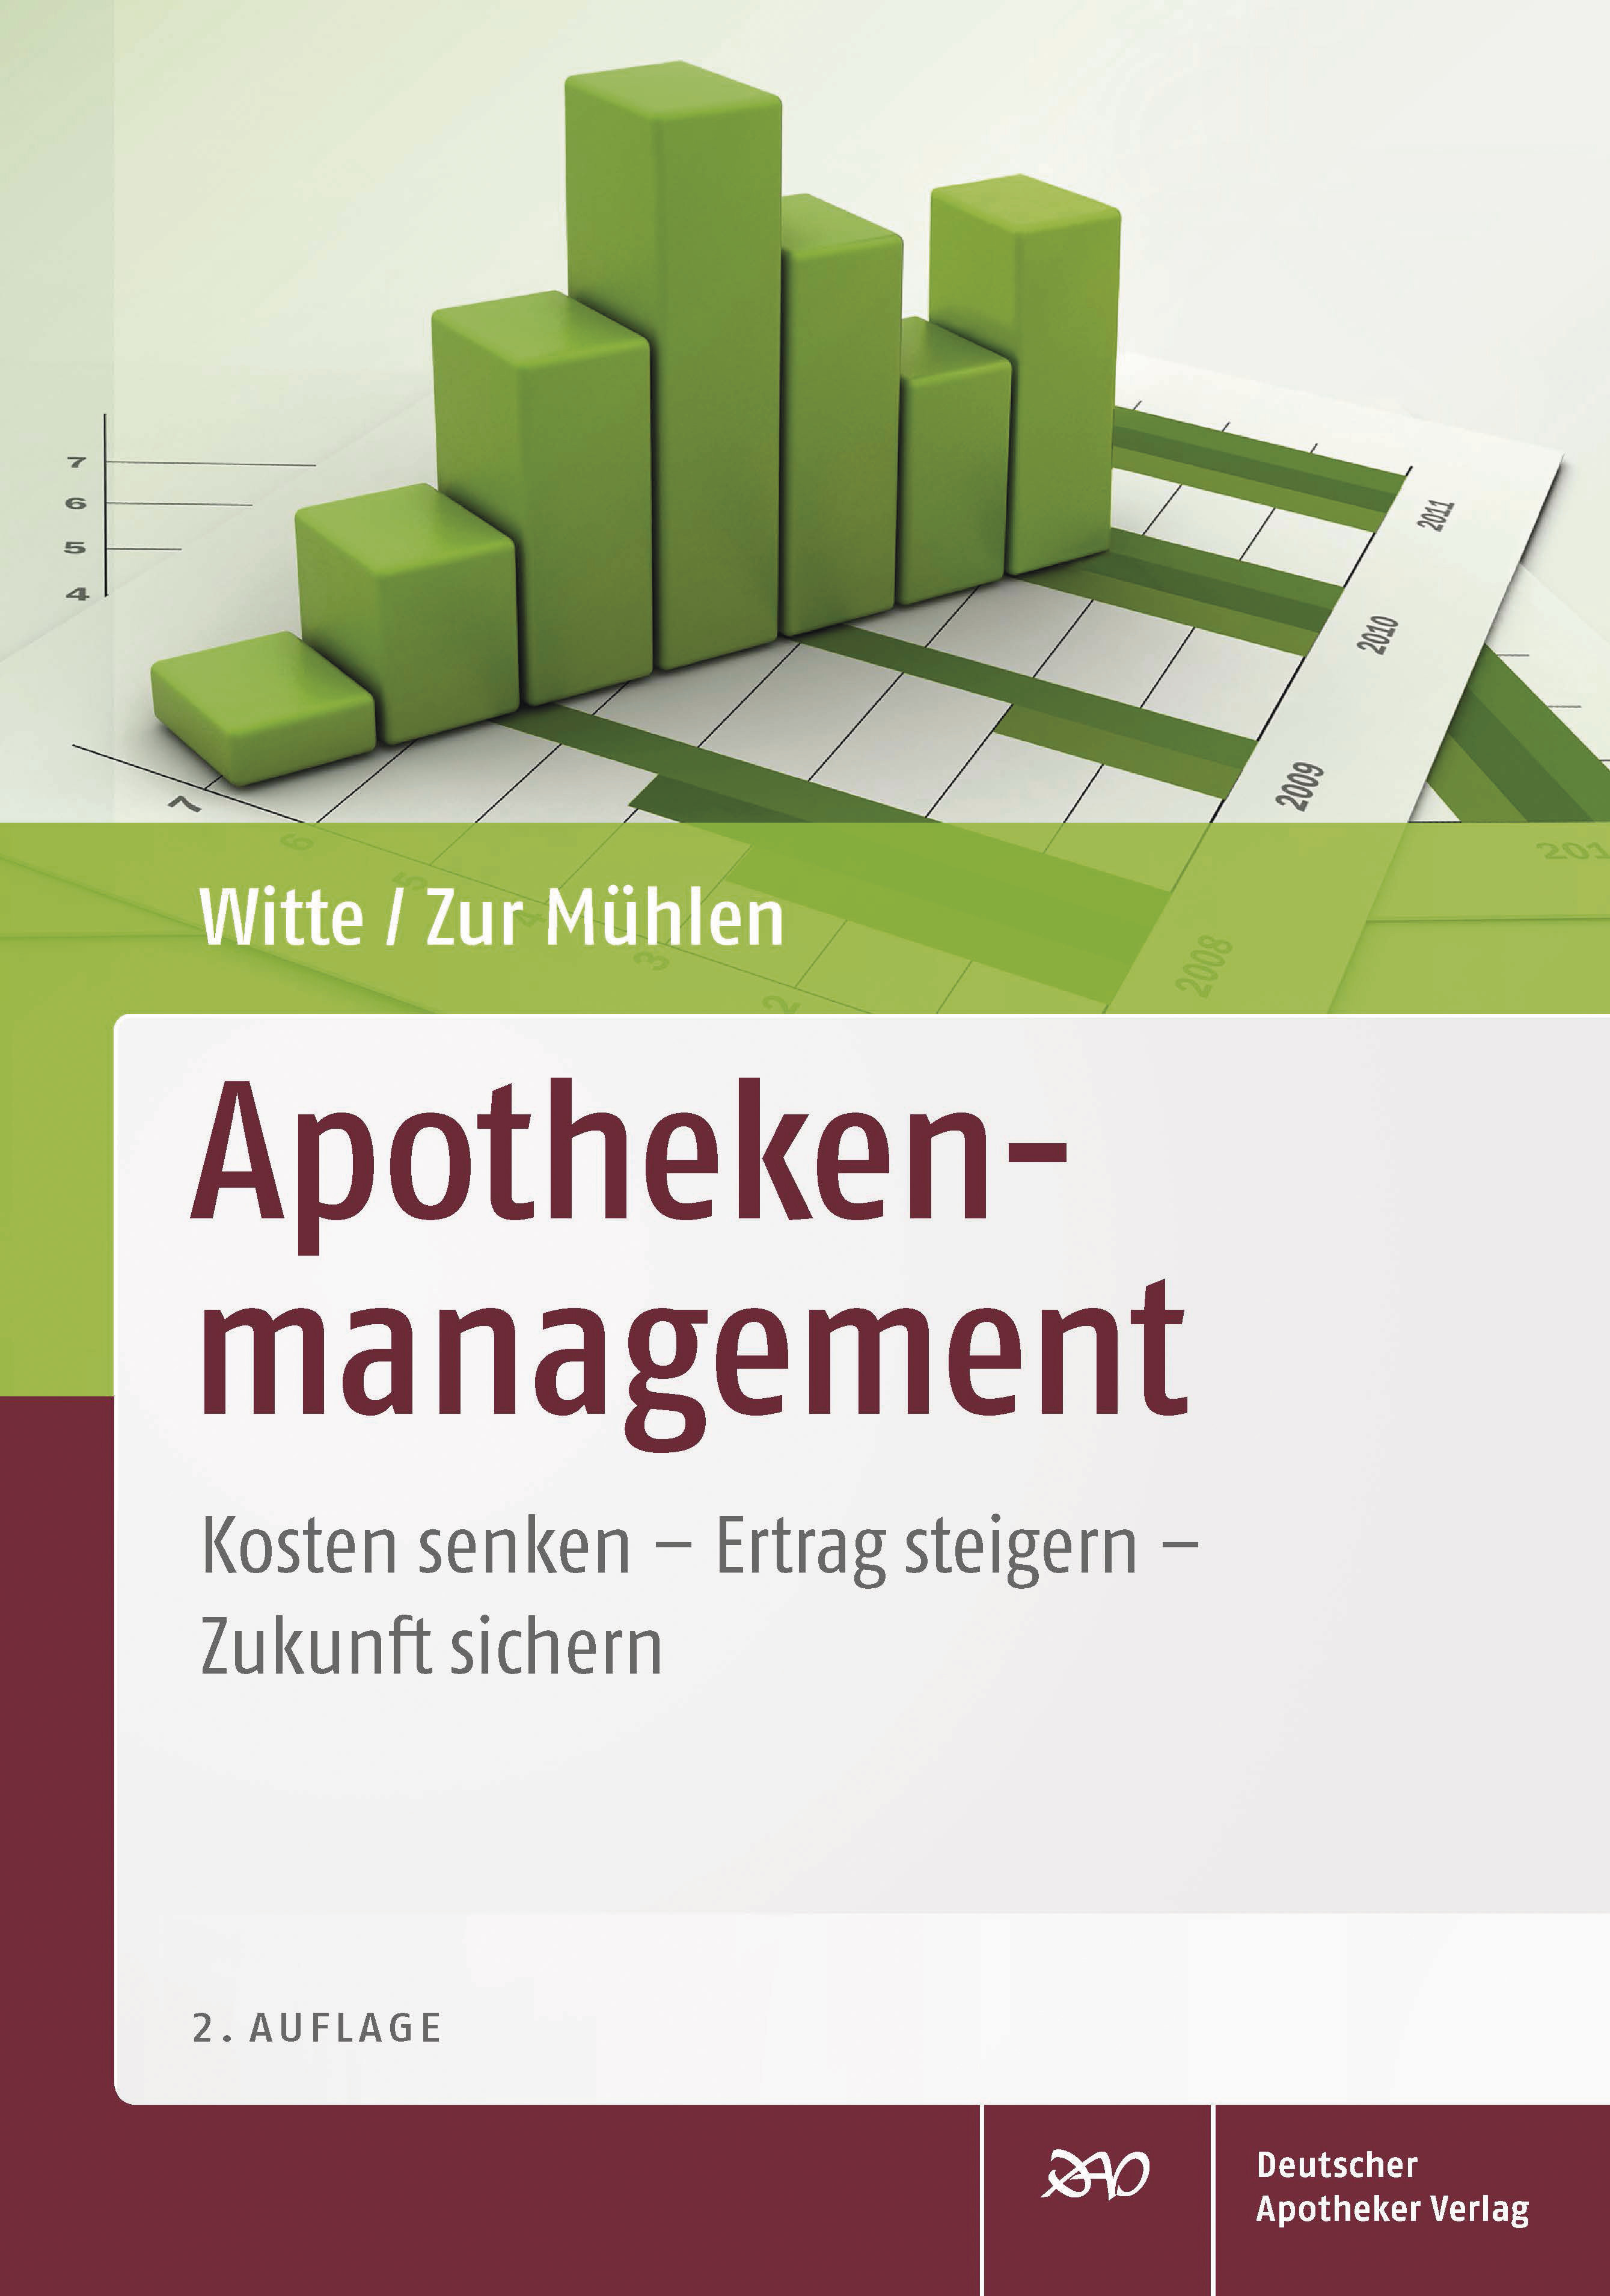 Apothekenmanagement